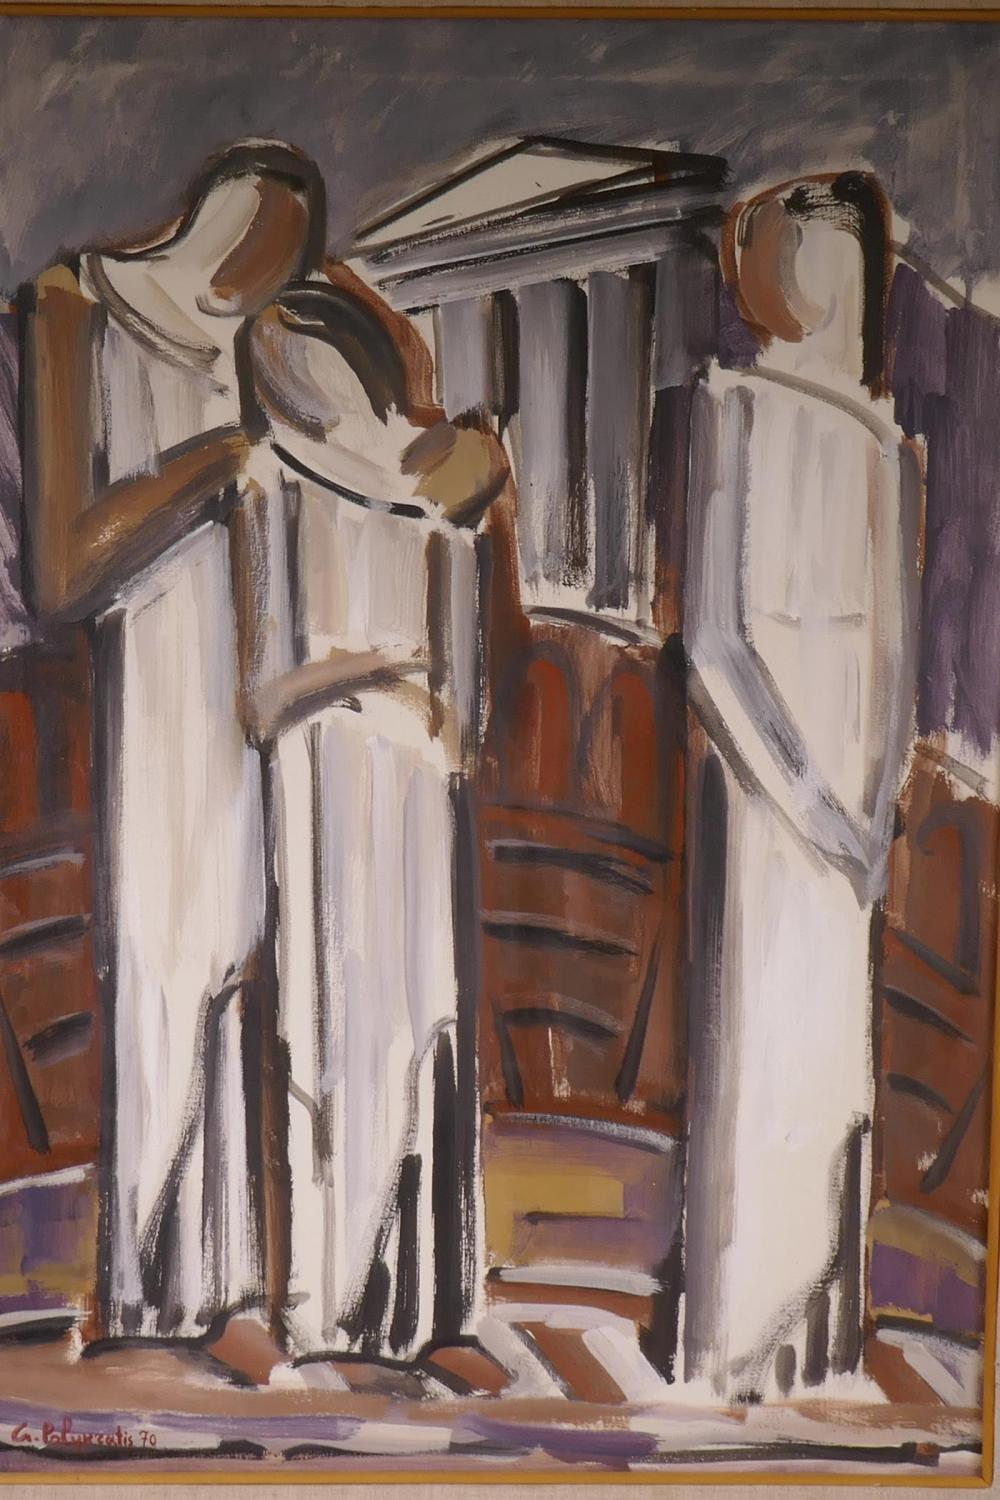 Lot 860: Giorgio Polykratis, three figures, signed and dated 1970, label  verso Contemporarte Gallerie Firenze, oil on canvas, 19